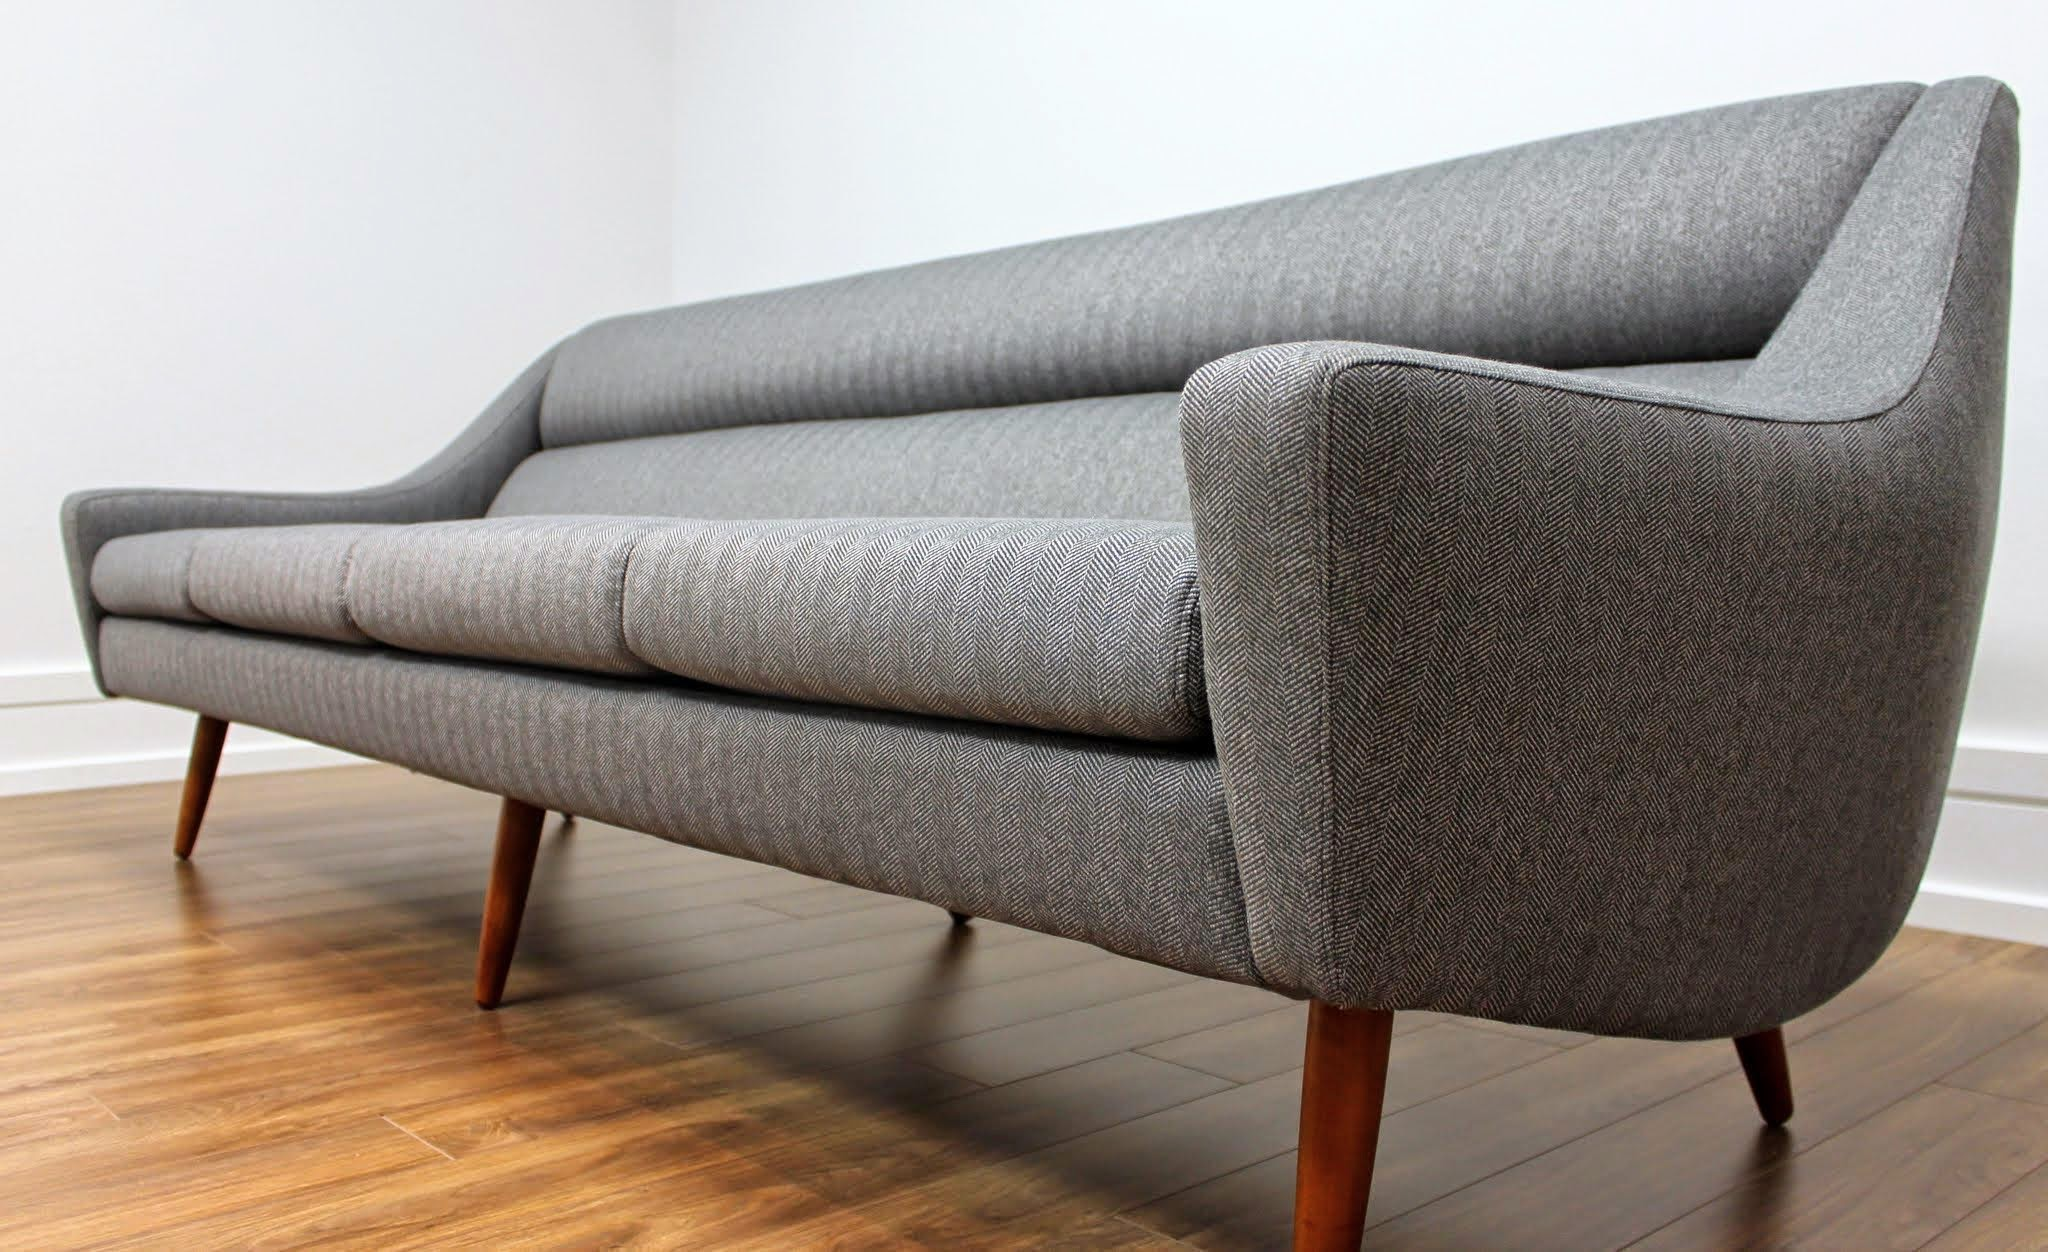 re-upholstery - whether just changing the fabric, re-enforcing the original frame, replacing all filling or all of the above.  re-upholstery allows you to revive your current furniture.